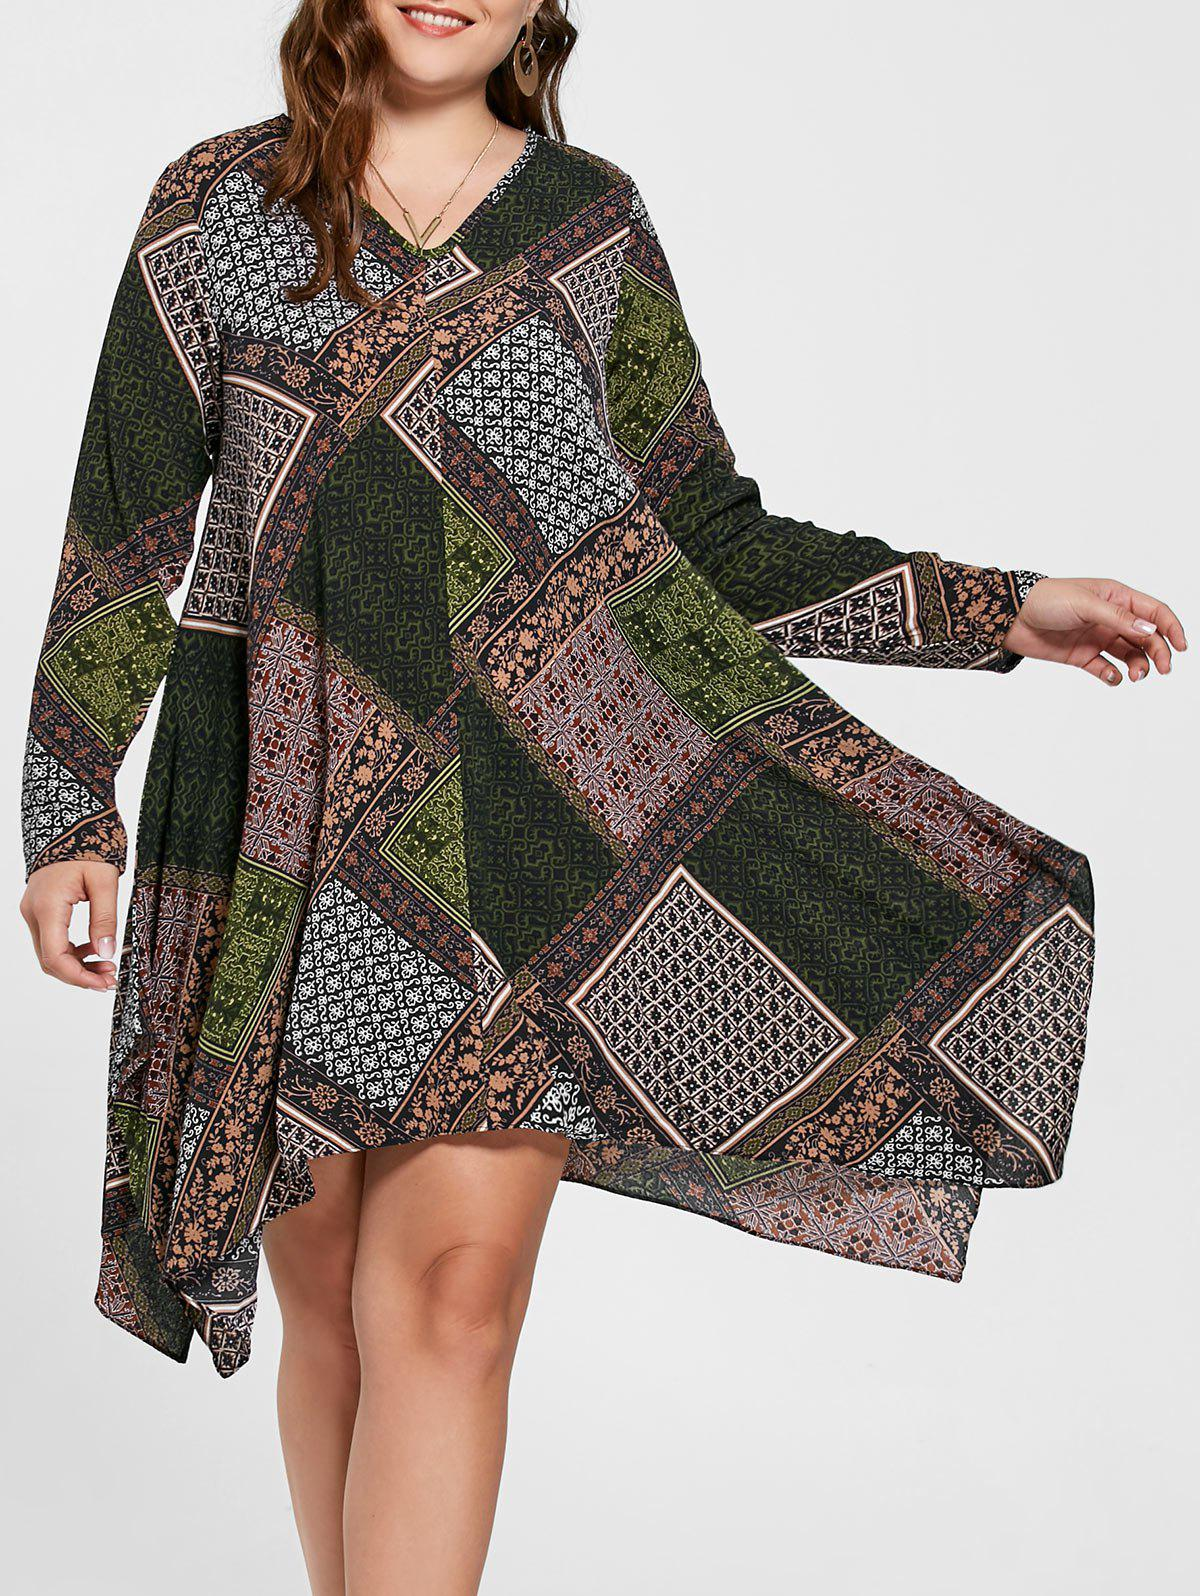 Plus Size Geometric Handkerchief DressWOMEN<br><br>Size: 4XL; Color: MULTICOLOR; Style: Casual; Material: Cotton,Polyester; Silhouette: Asymmetrical; Dresses Length: Knee-Length; Neckline: V-Neck; Sleeve Length: Long Sleeves; Pattern Type: Geometric; With Belt: No; Season: Fall; Weight: 0.2800kg; Package Contents: 1 x Dress;